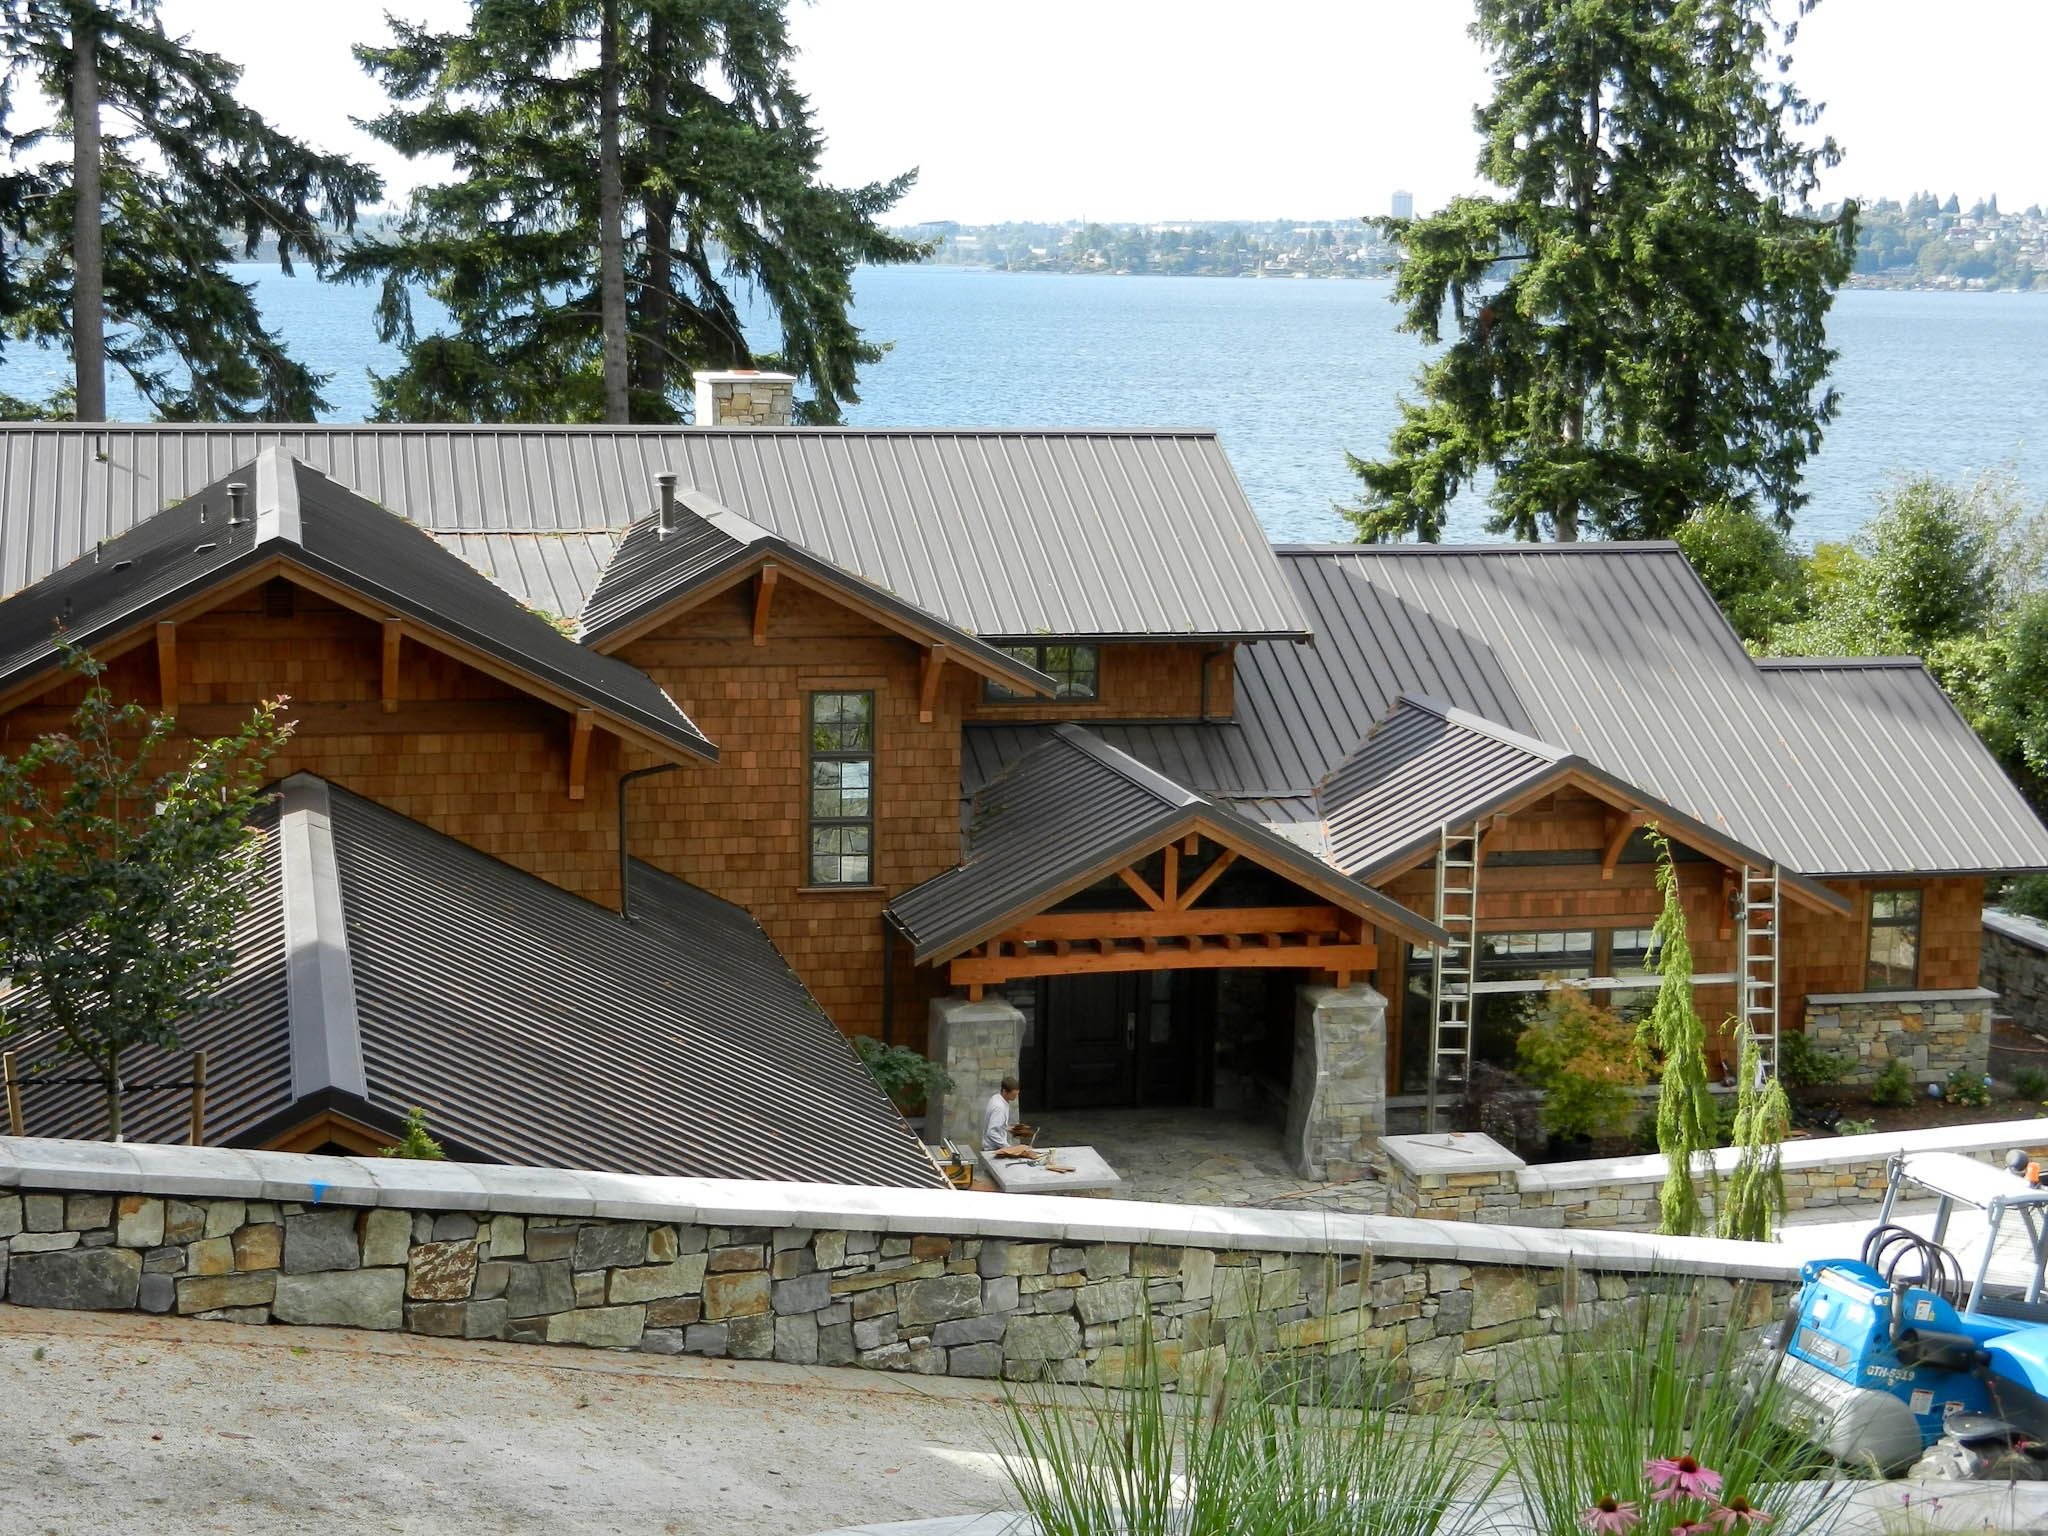 Metal Roofing Photo Gallery | Metal Roofing Alliance | Photos Of Metal Roof  Types And Styles | House Plans | Pinterest | Metal Roof, Photo Galleries  And ...